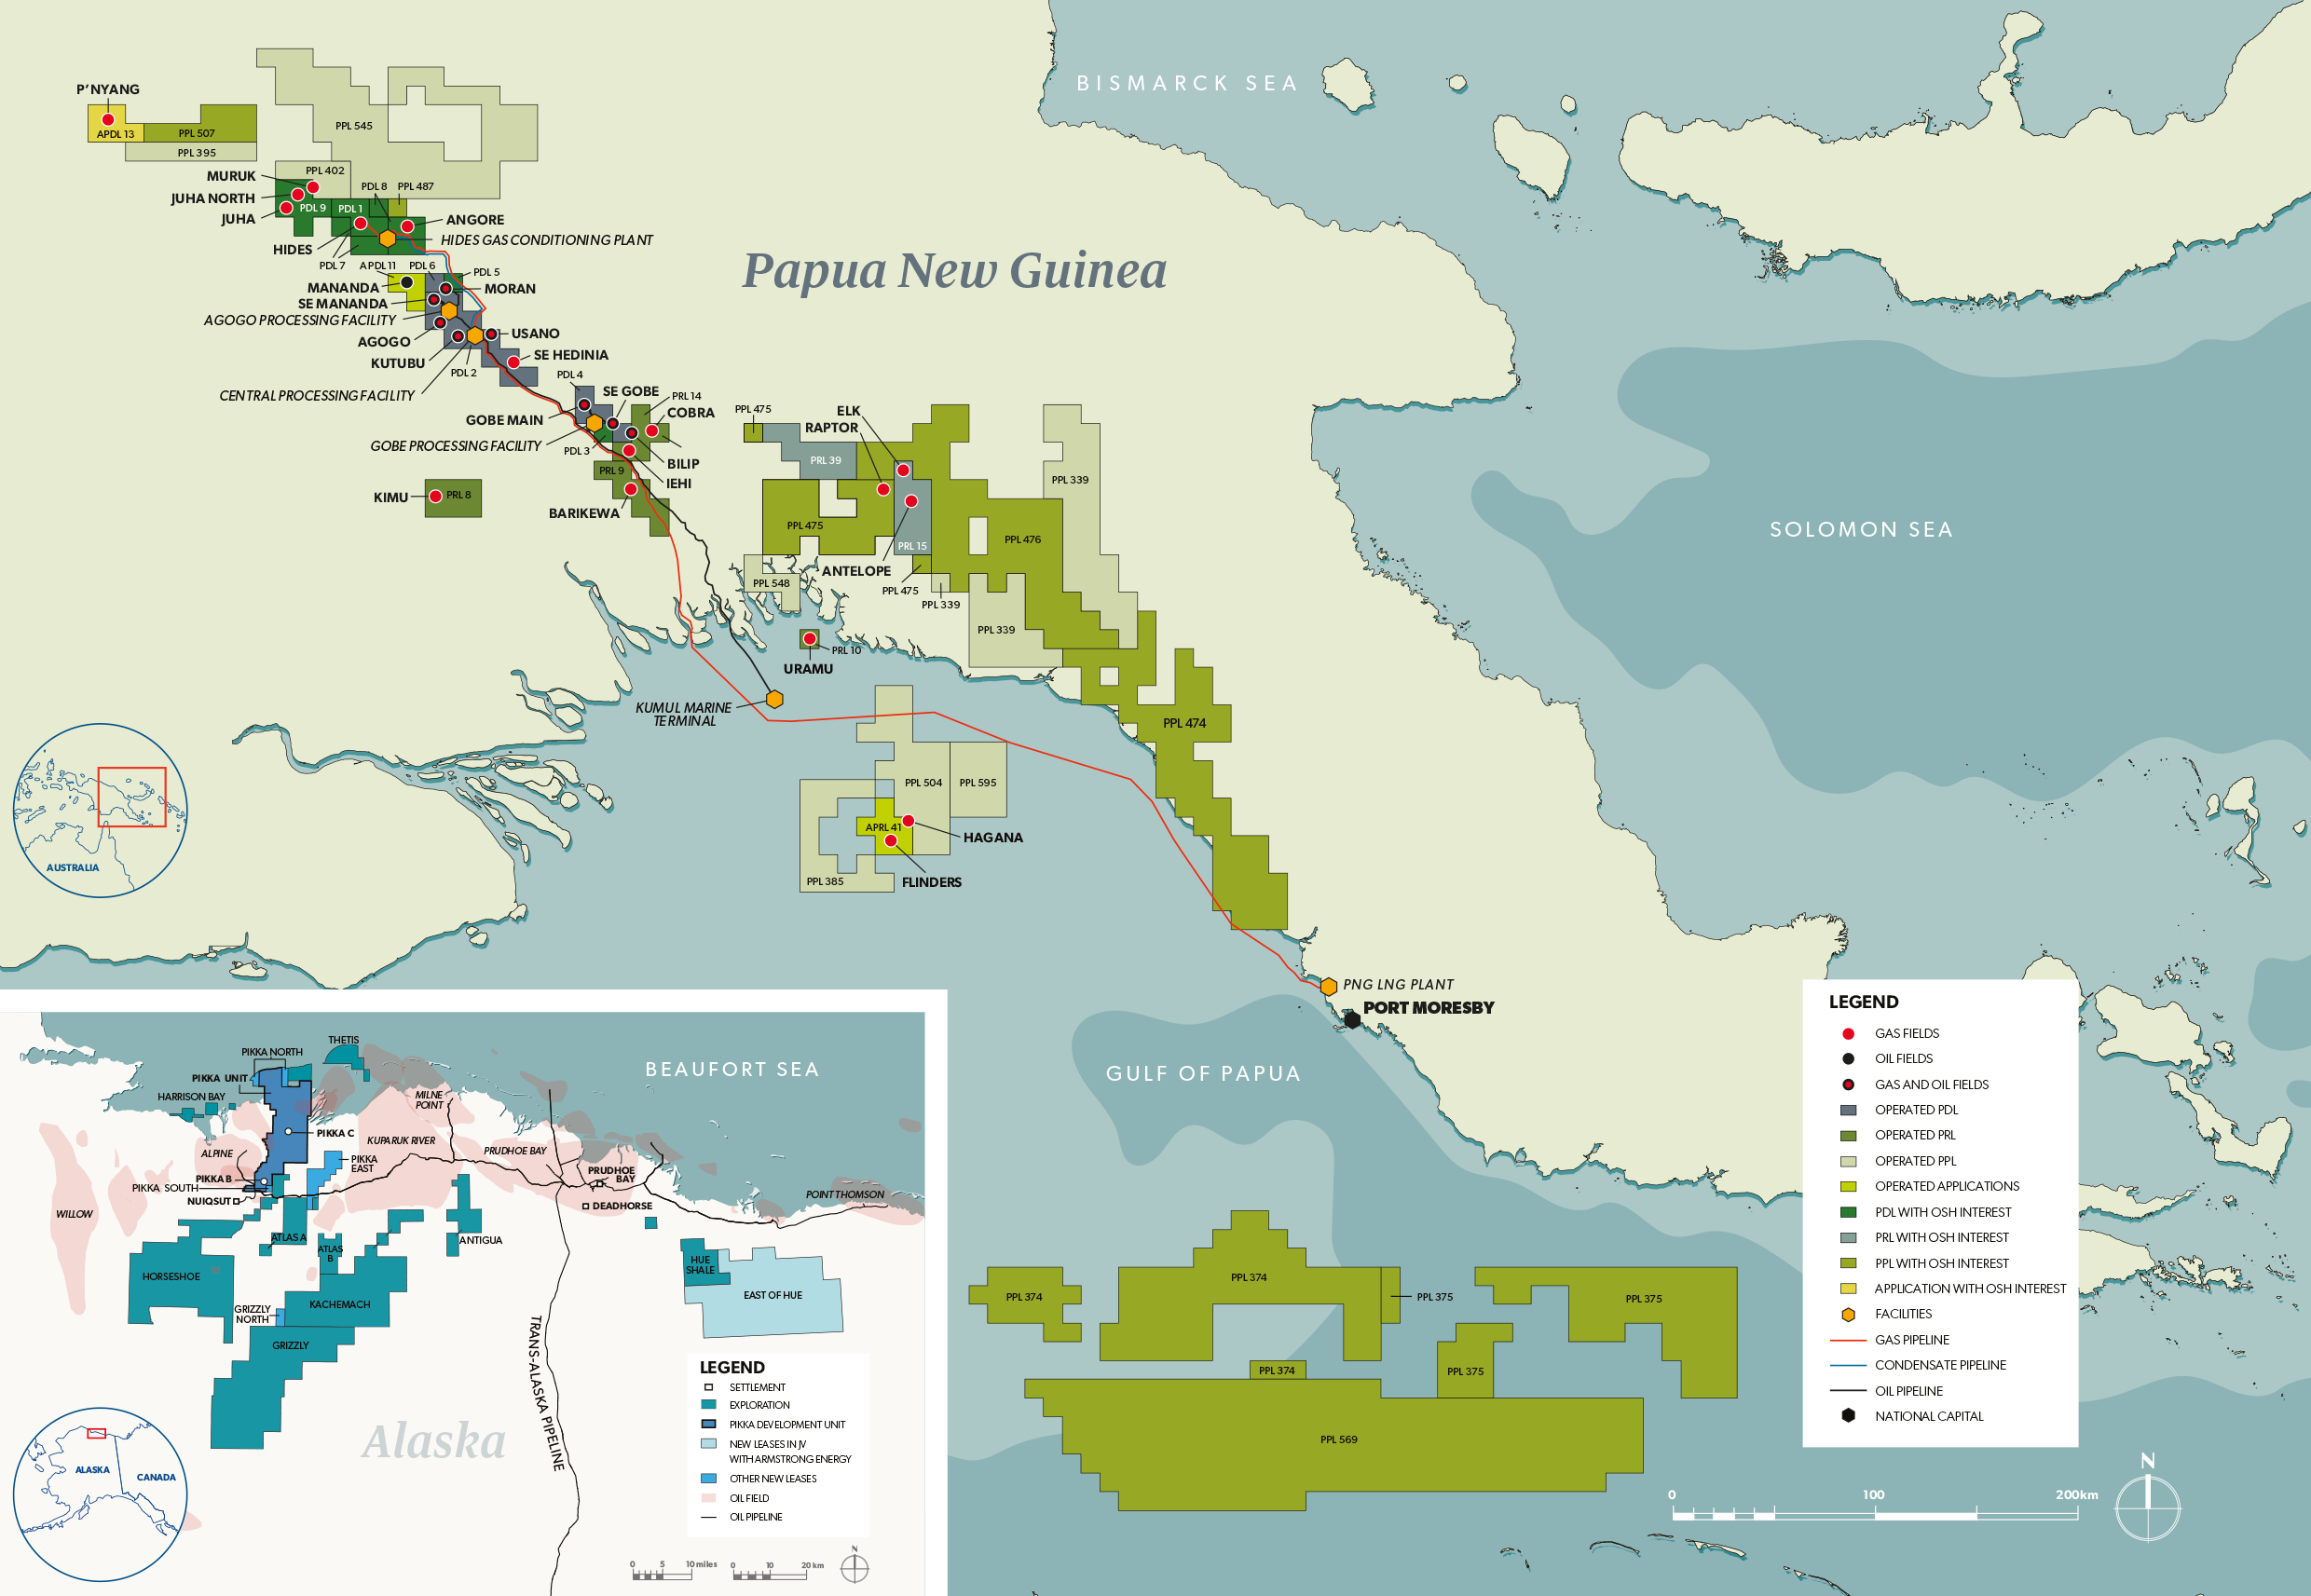 Lng project map download free clipart with a transparent.